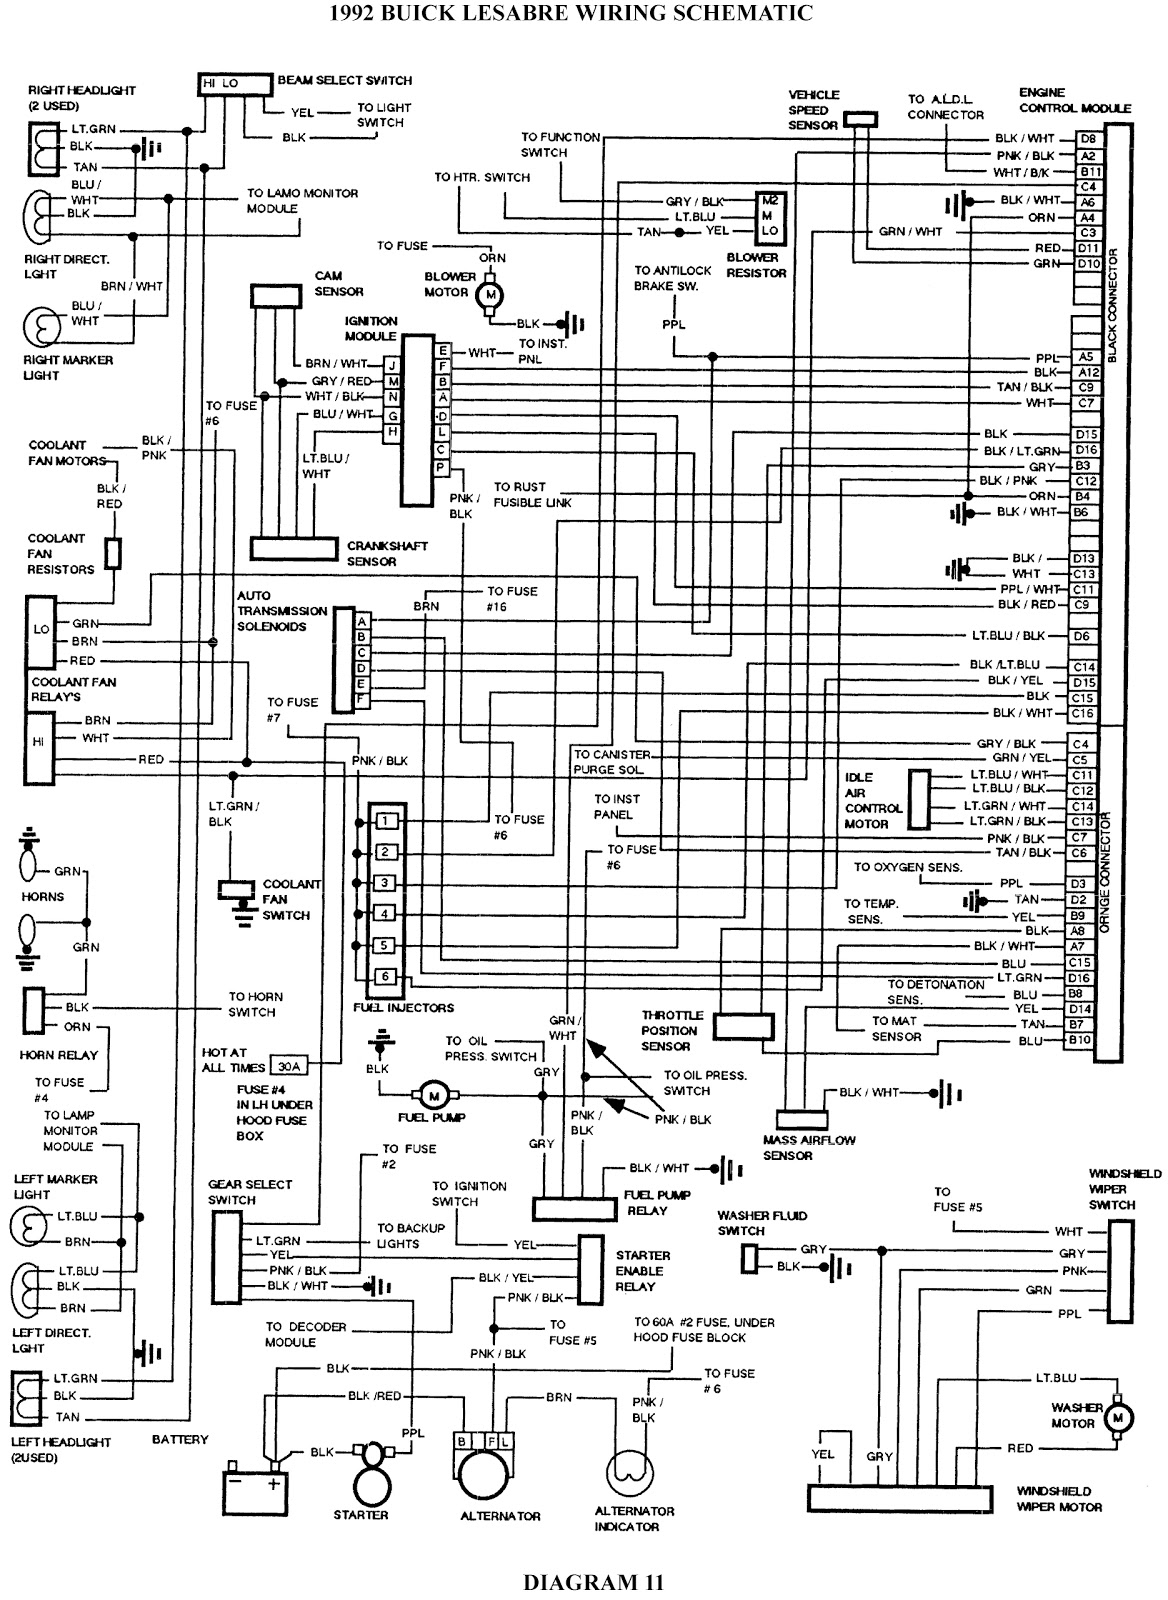 1997 buick skylark engine diagram wiring diagrams 1997 chrysler concorde wiring diagram 1997 buick lesabre 3 [ 1168 x 1600 Pixel ]